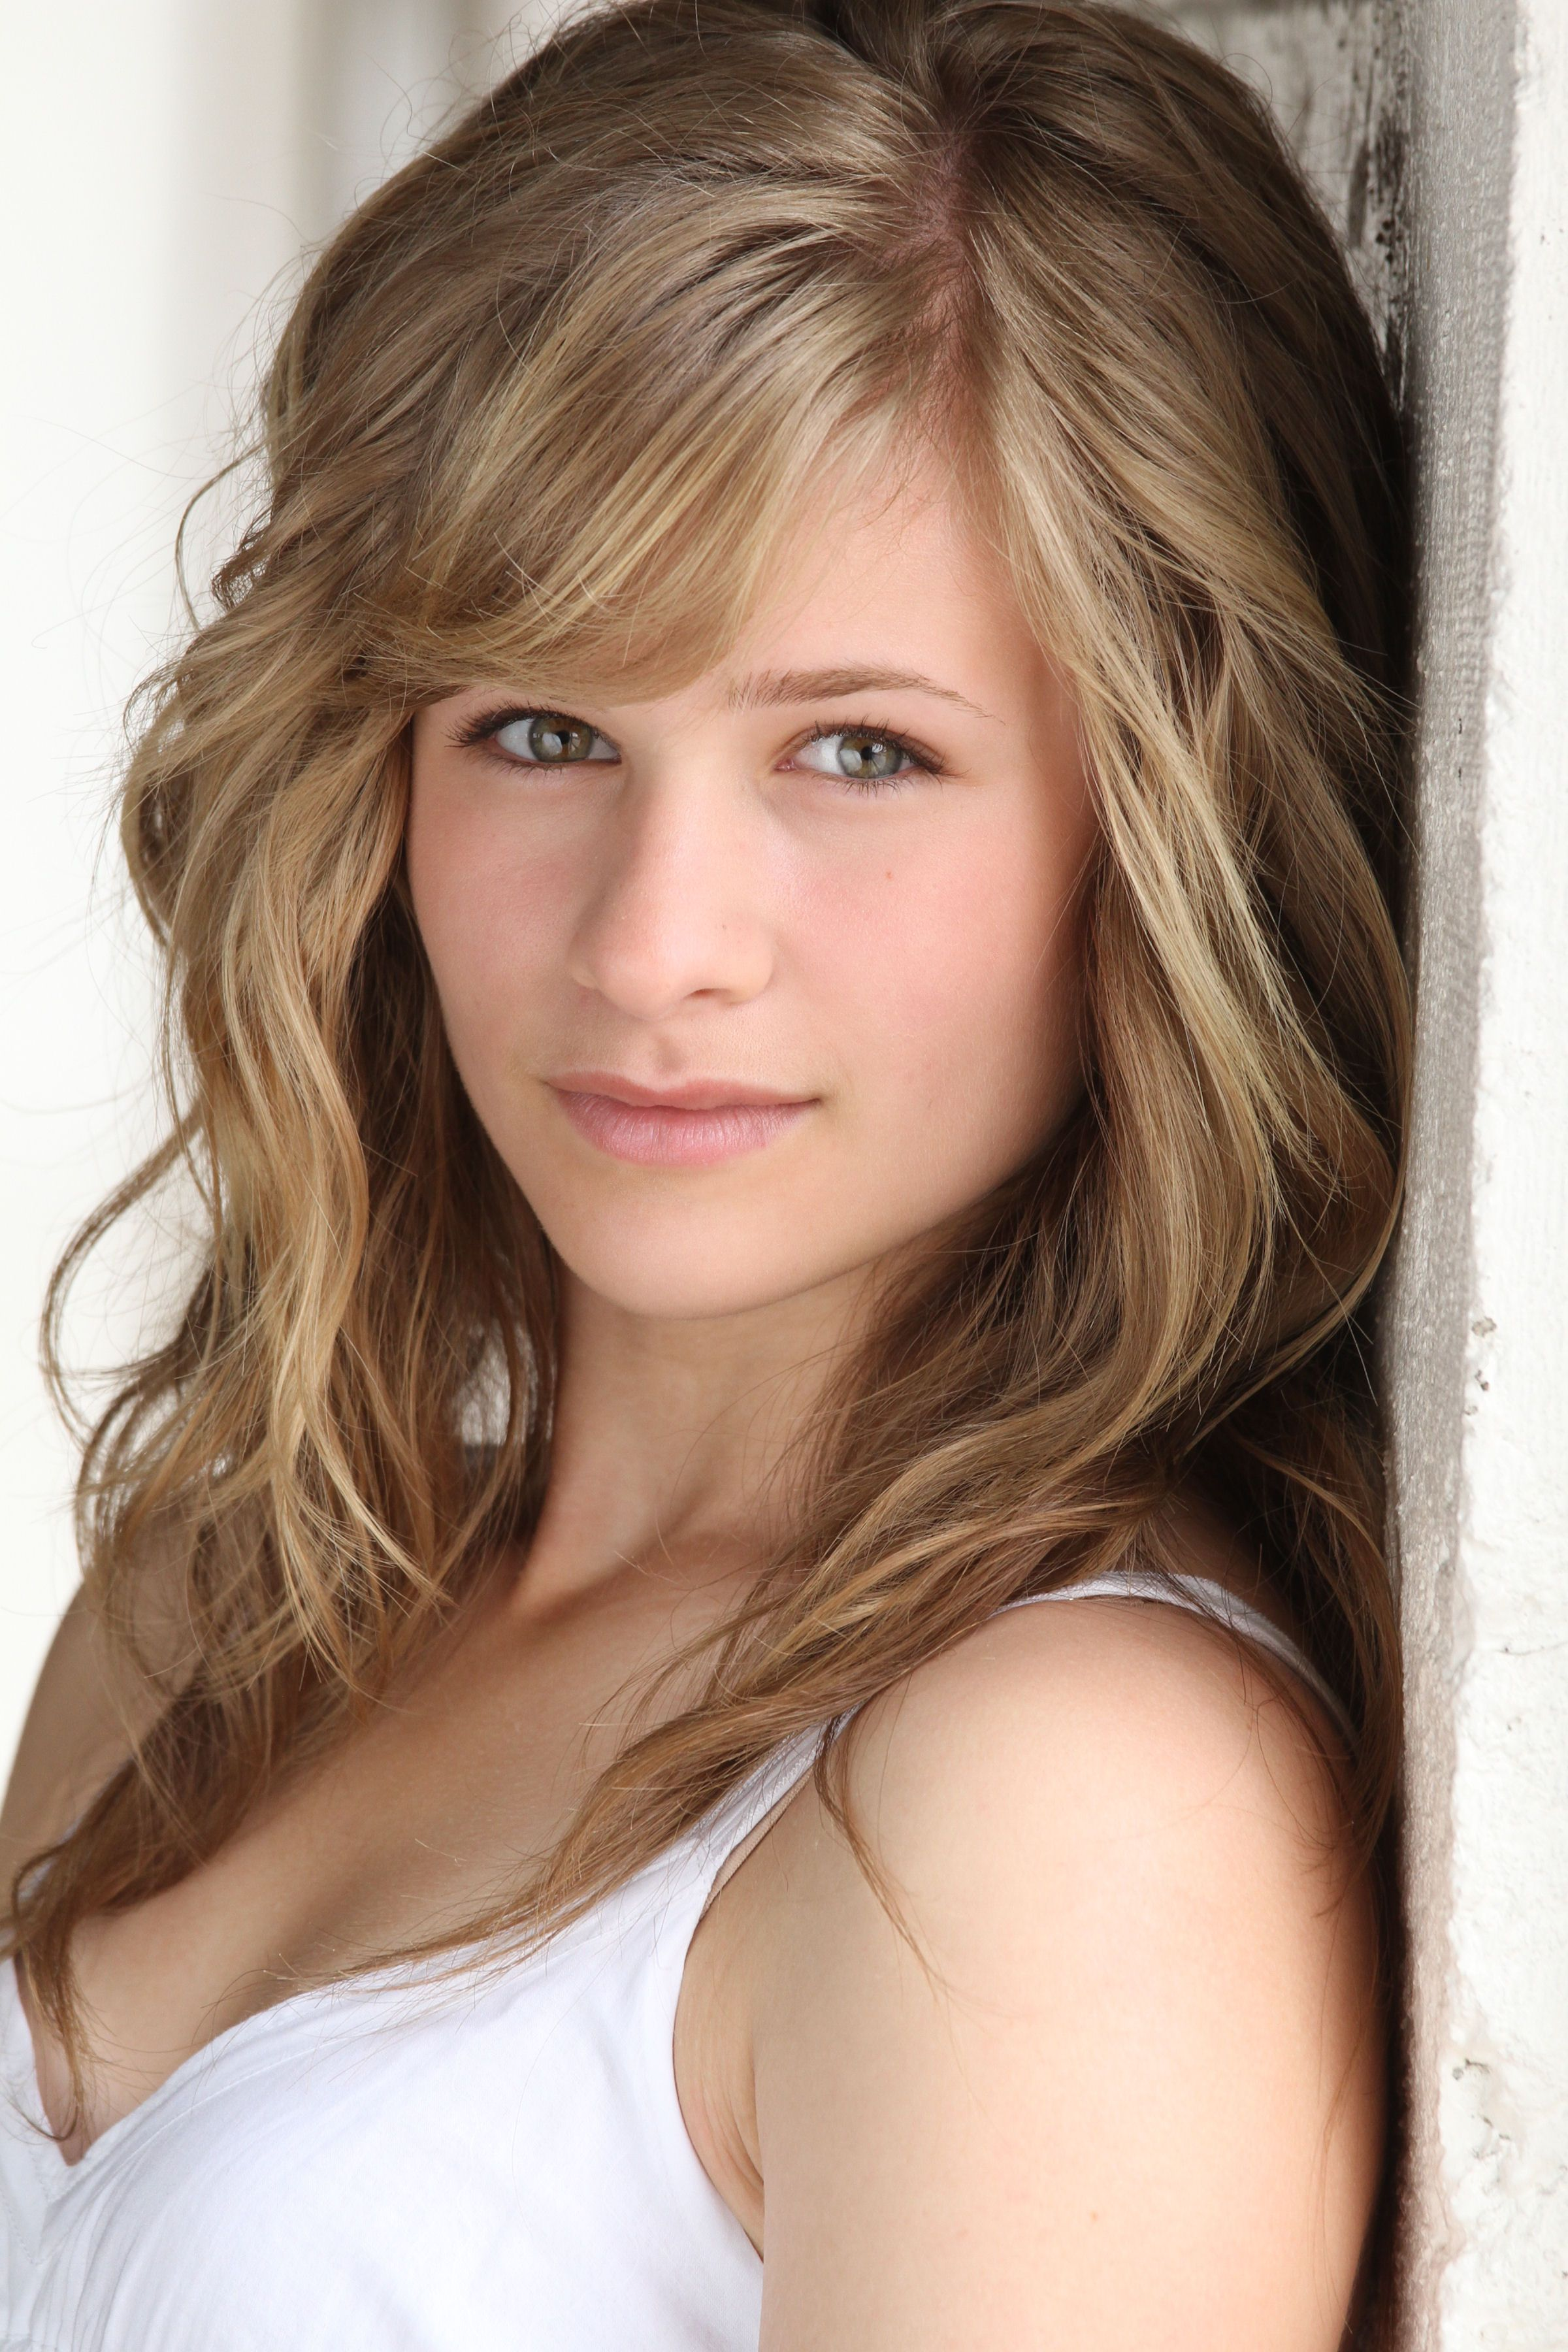 jenna boyd criminal minds